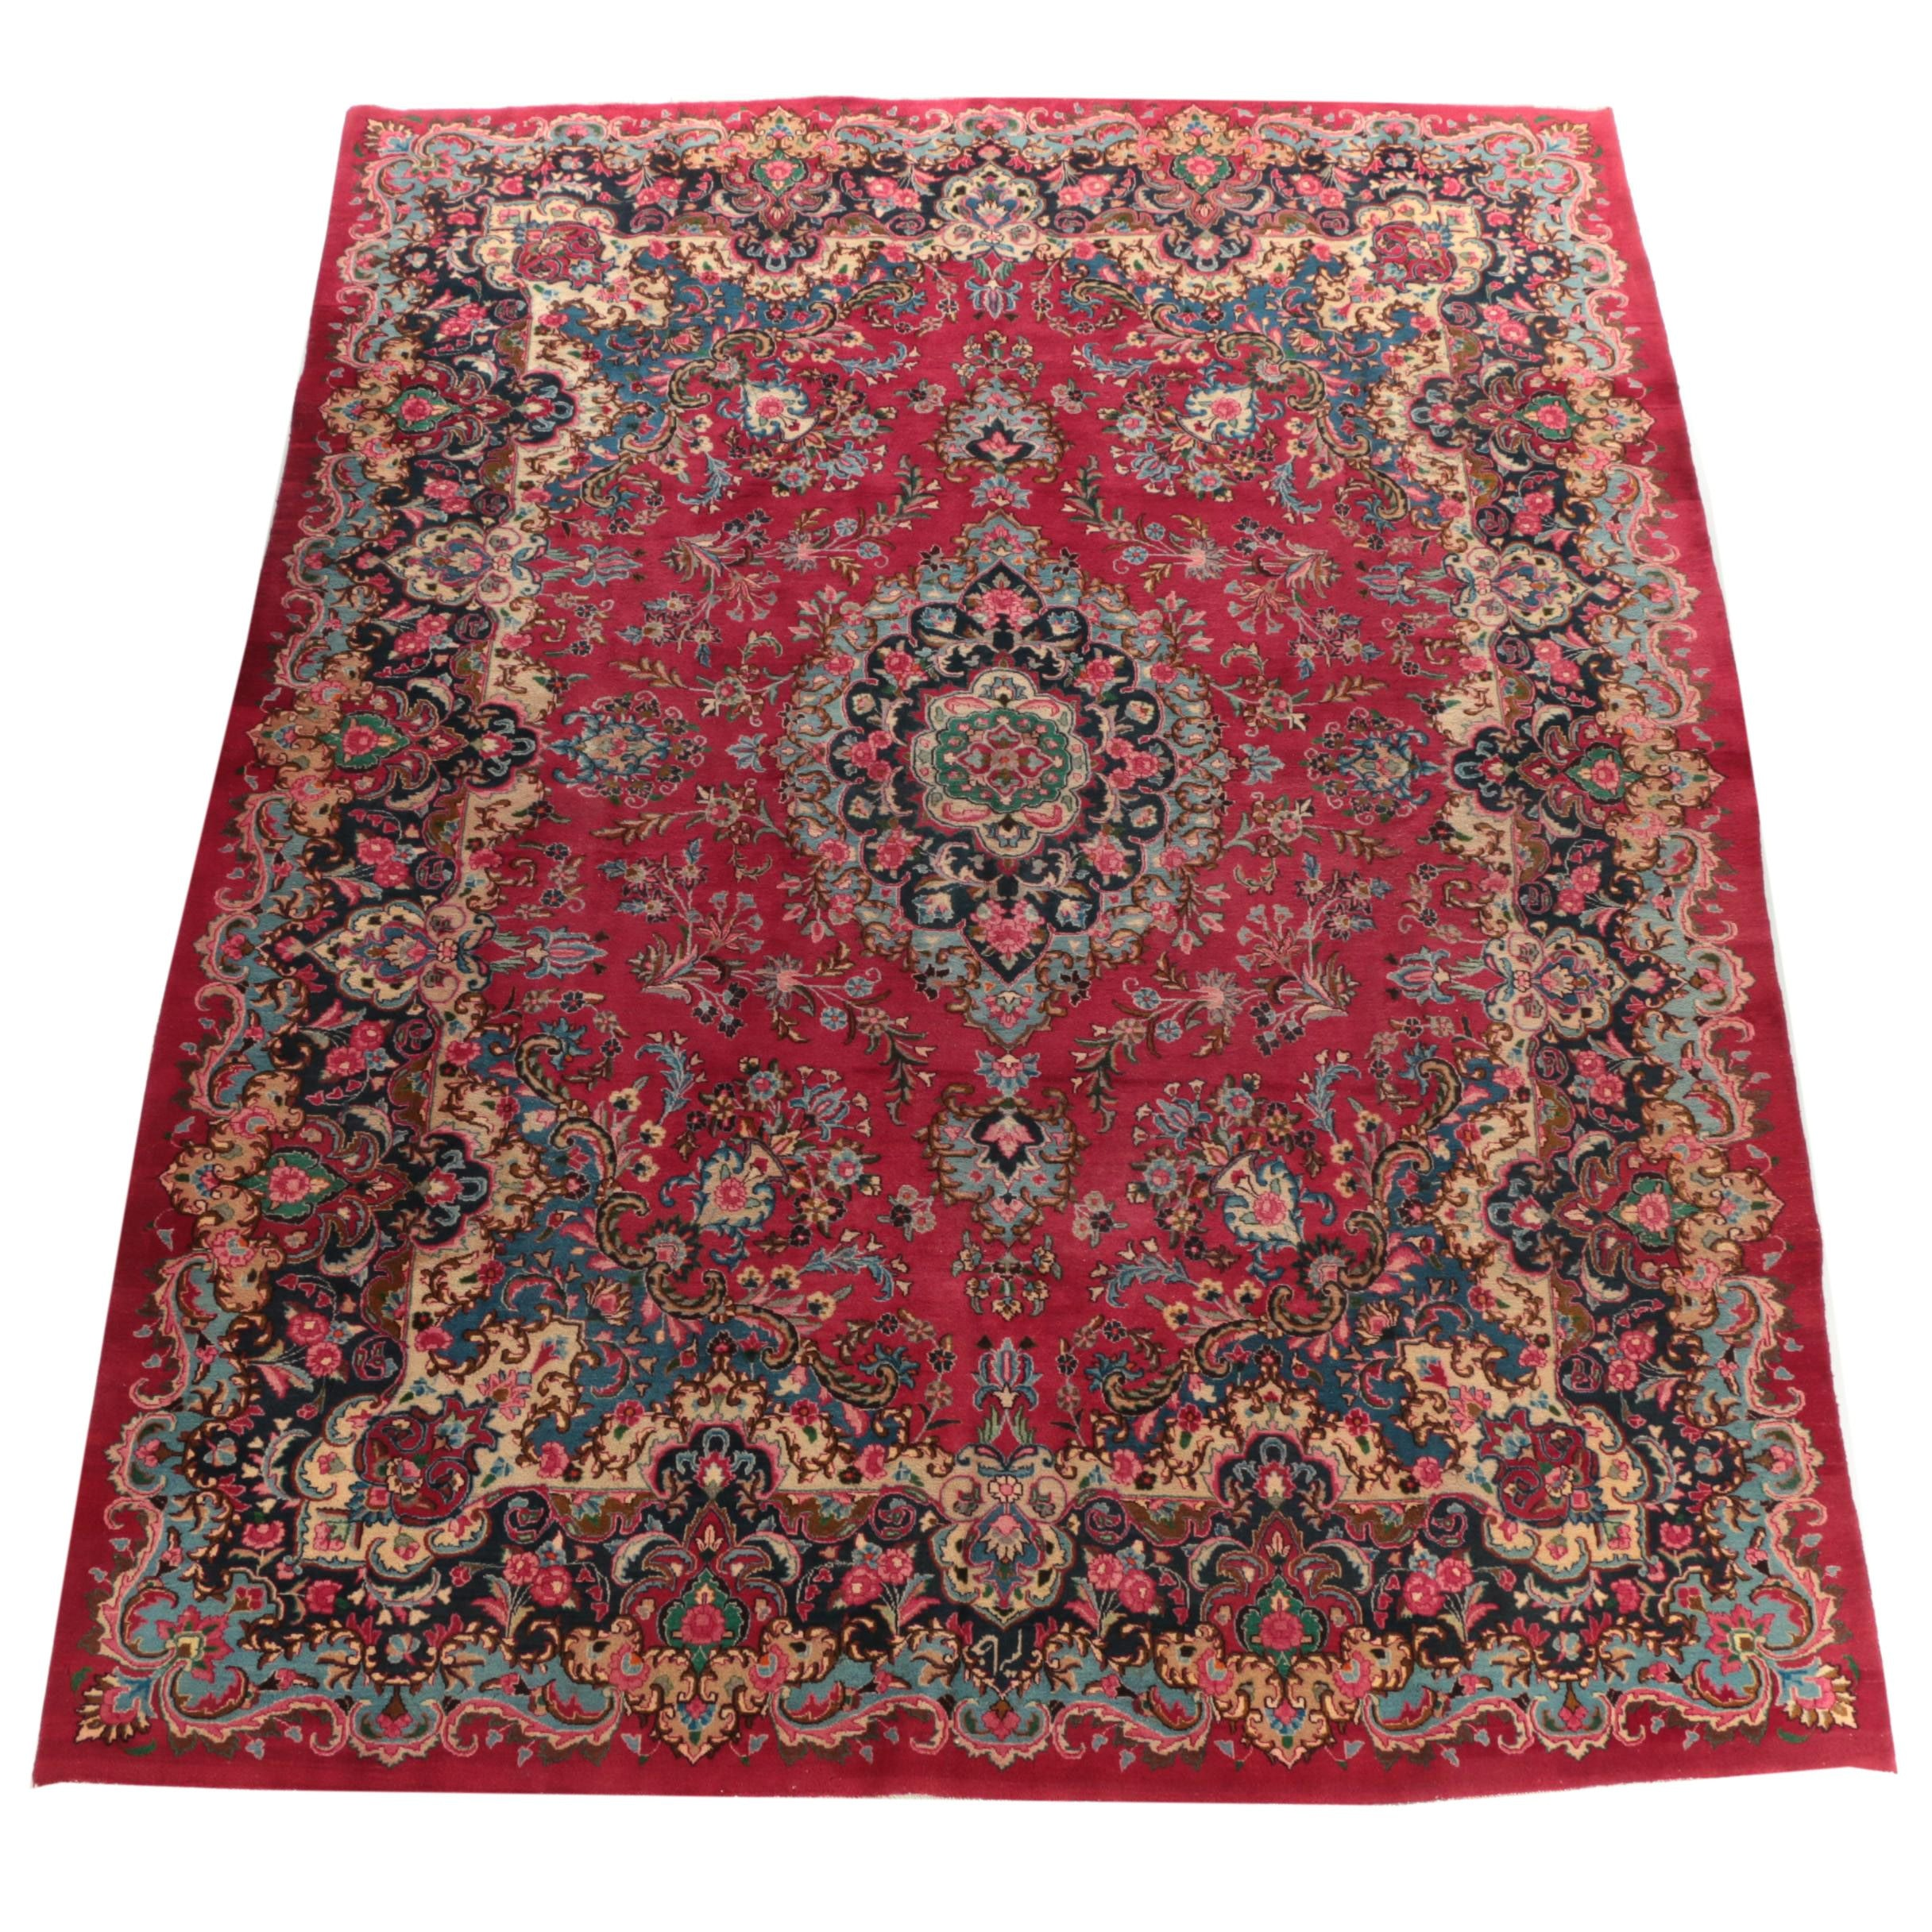 Hand-Knotted Persian Floral Wool Room Sized Rug